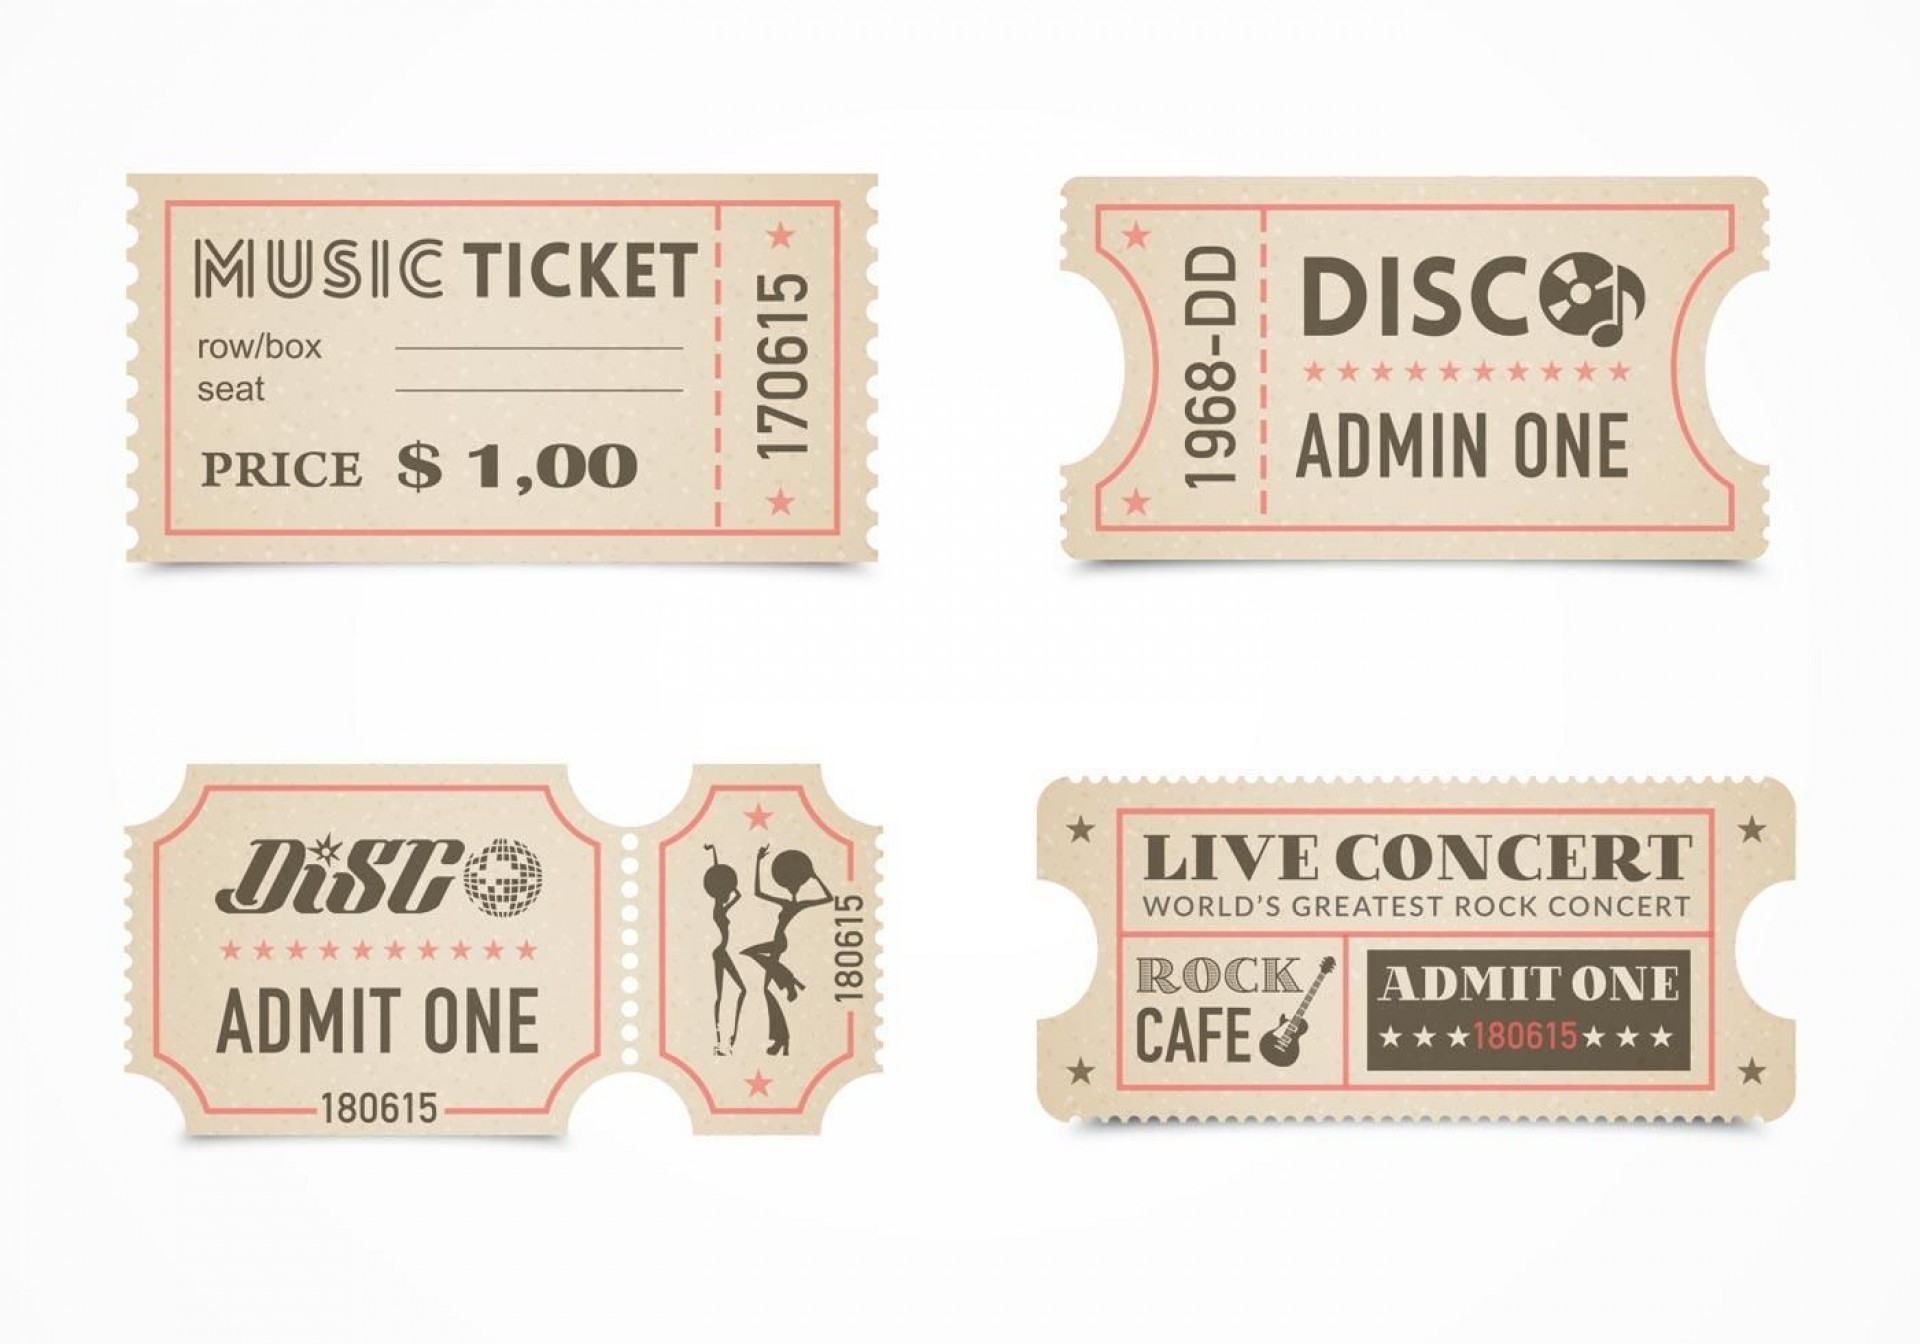 005 Shocking Vintage Concert Ticket Template Free Download Inspiration 1920